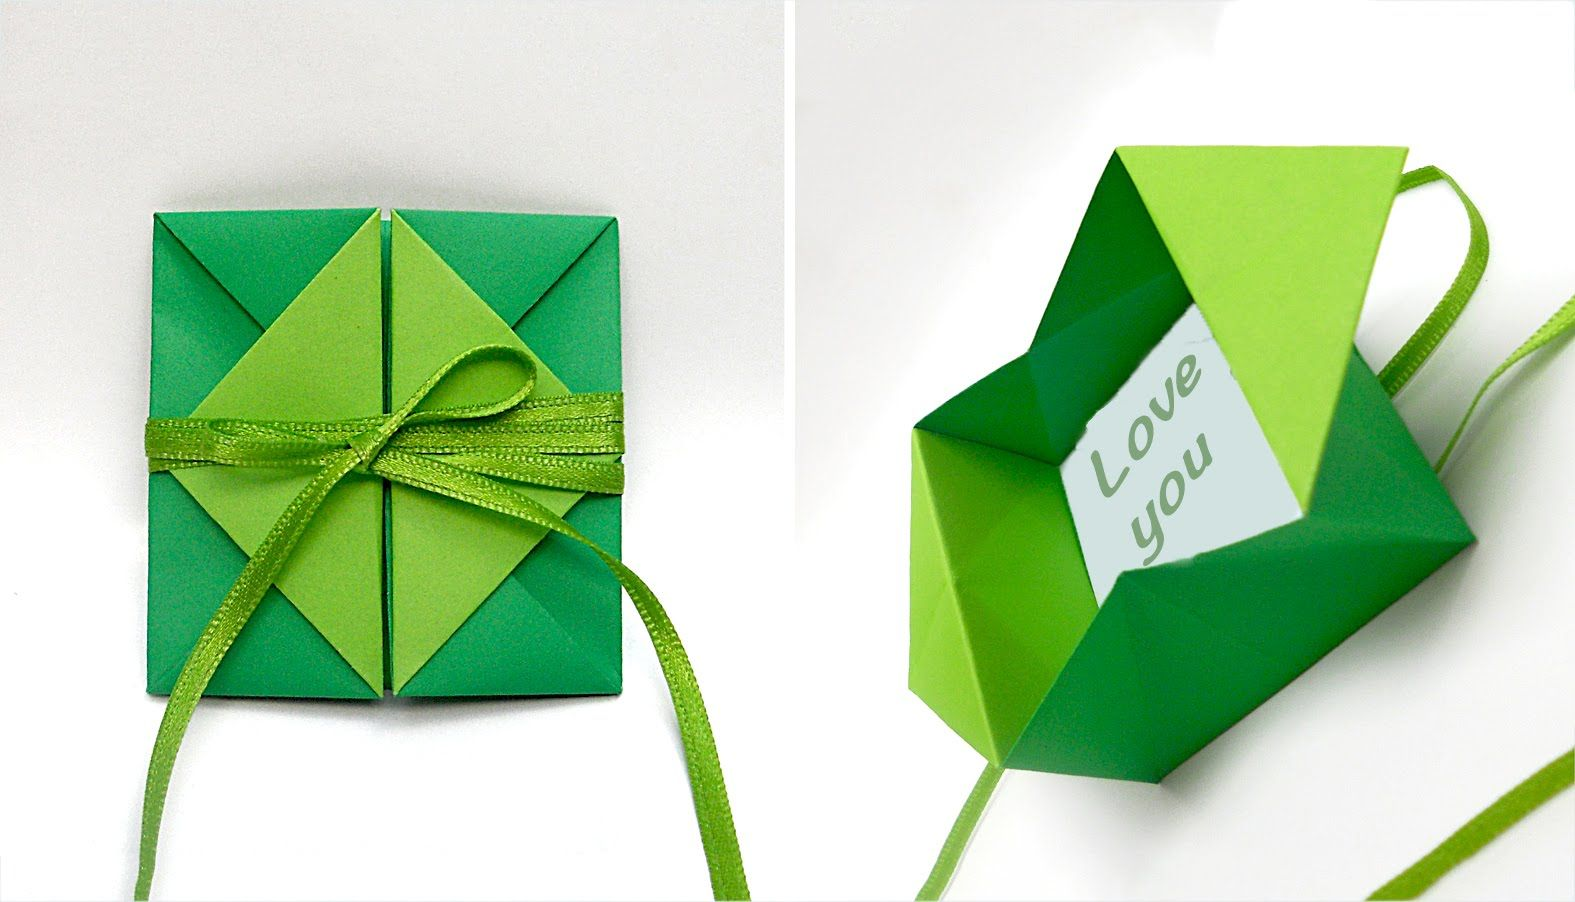 Pop up diamond envelope gift for easter origami great ideas for gift card ideas for easter show your crafts and diy projects negle Image collections